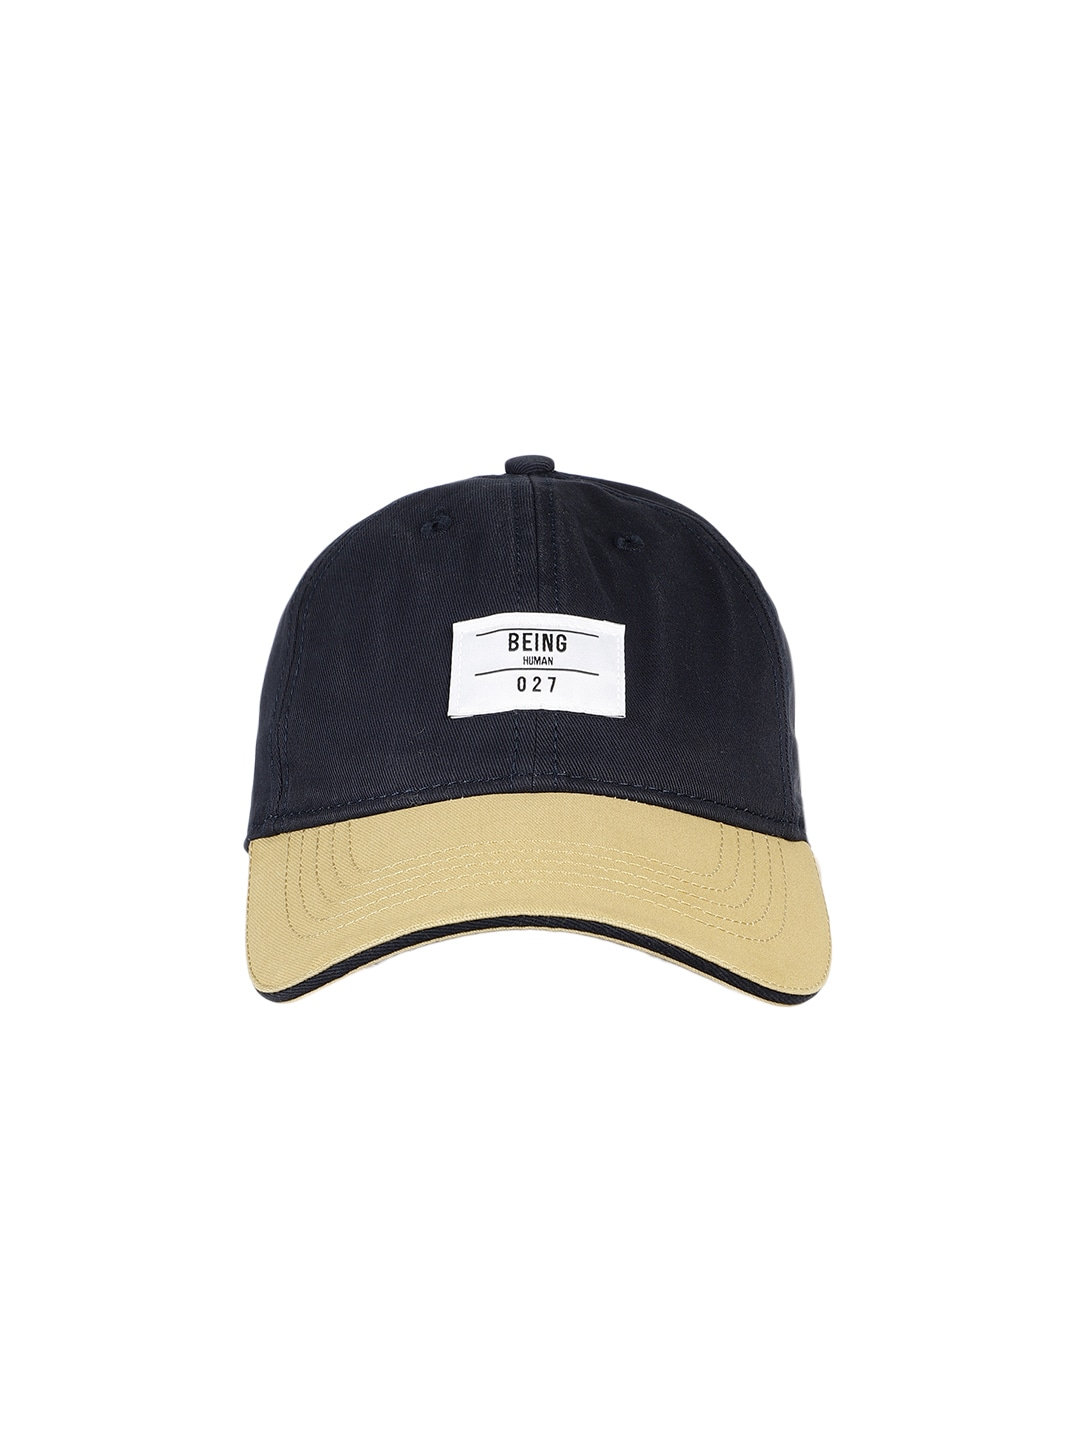 47affe67a262f Hats   Caps For Men - Shop Mens Caps   Hats Online at best price ...